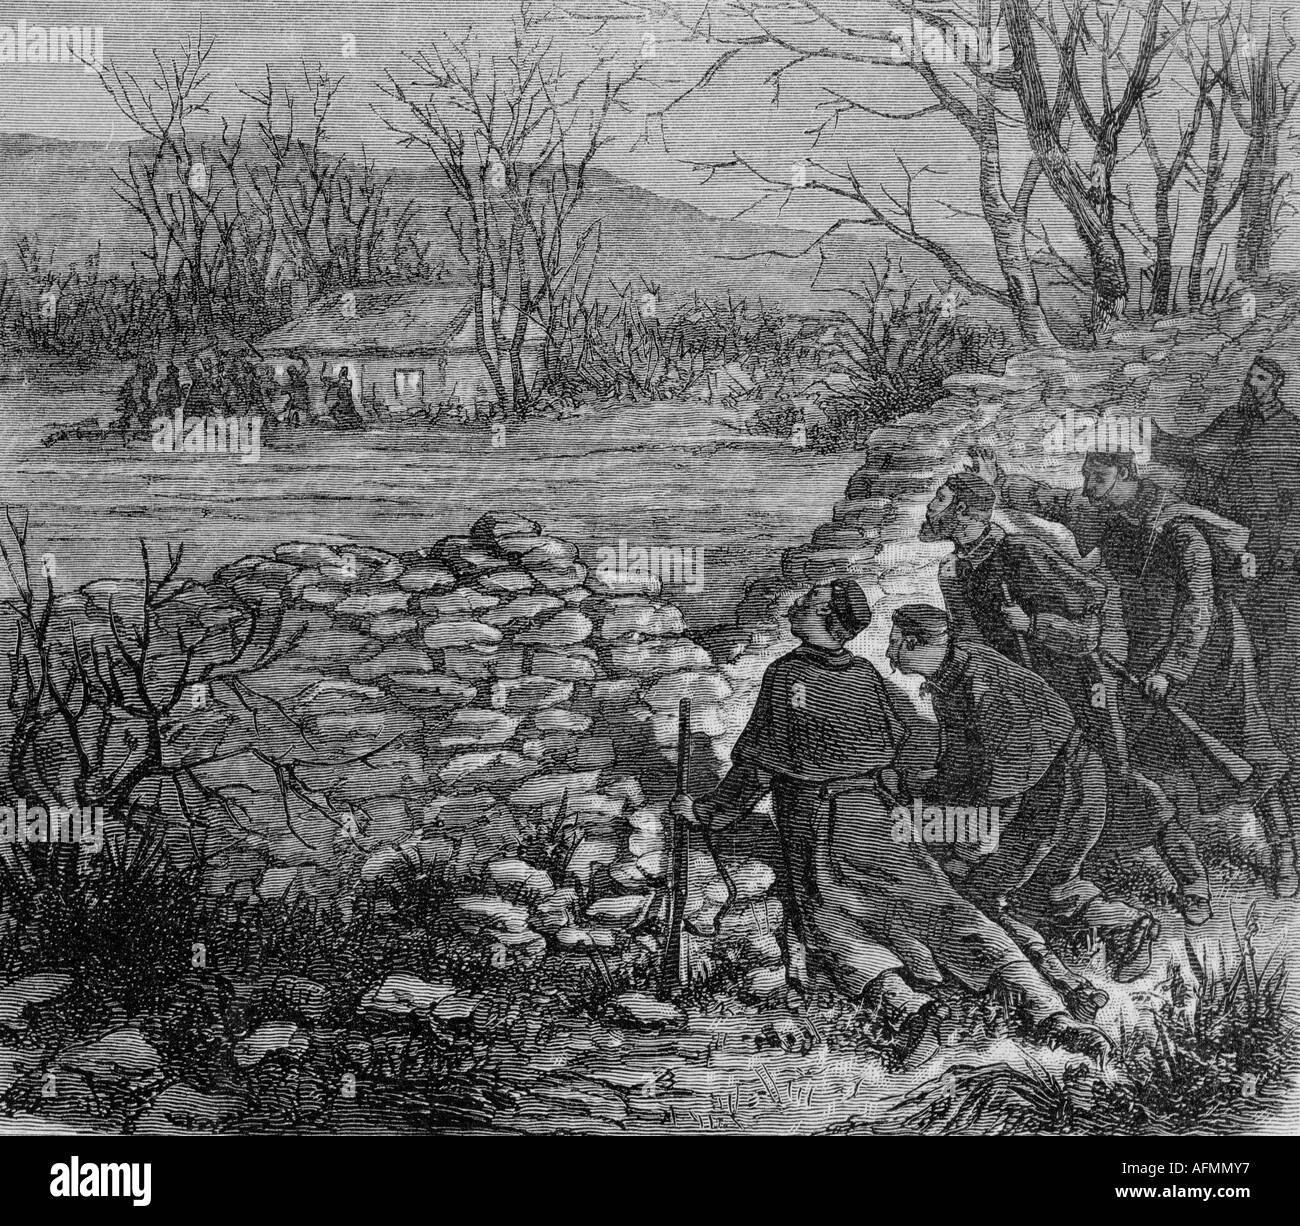 geography/travel, Ireland, disturbances 1881, terror of the 'Moonshine Boys', capture of 'Captain Moonshine' by British police, contemporary engraving, 19th century, Great Britain, , Additional-Rights-Clearances-NA - Stock Image